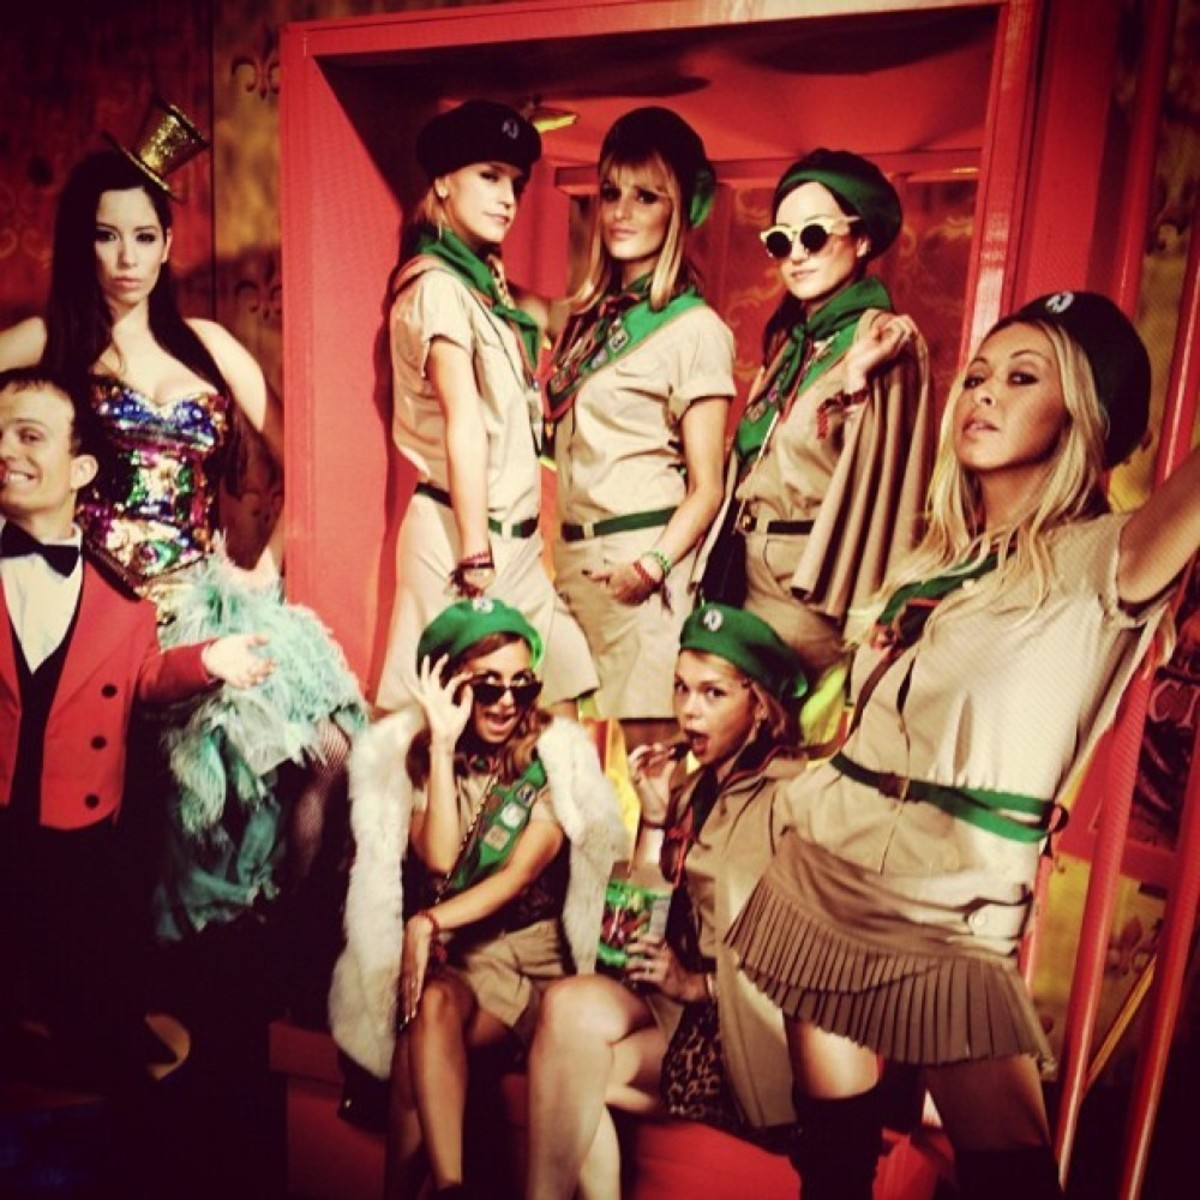 Nicole Richie and friends as Troop Beverly Hills